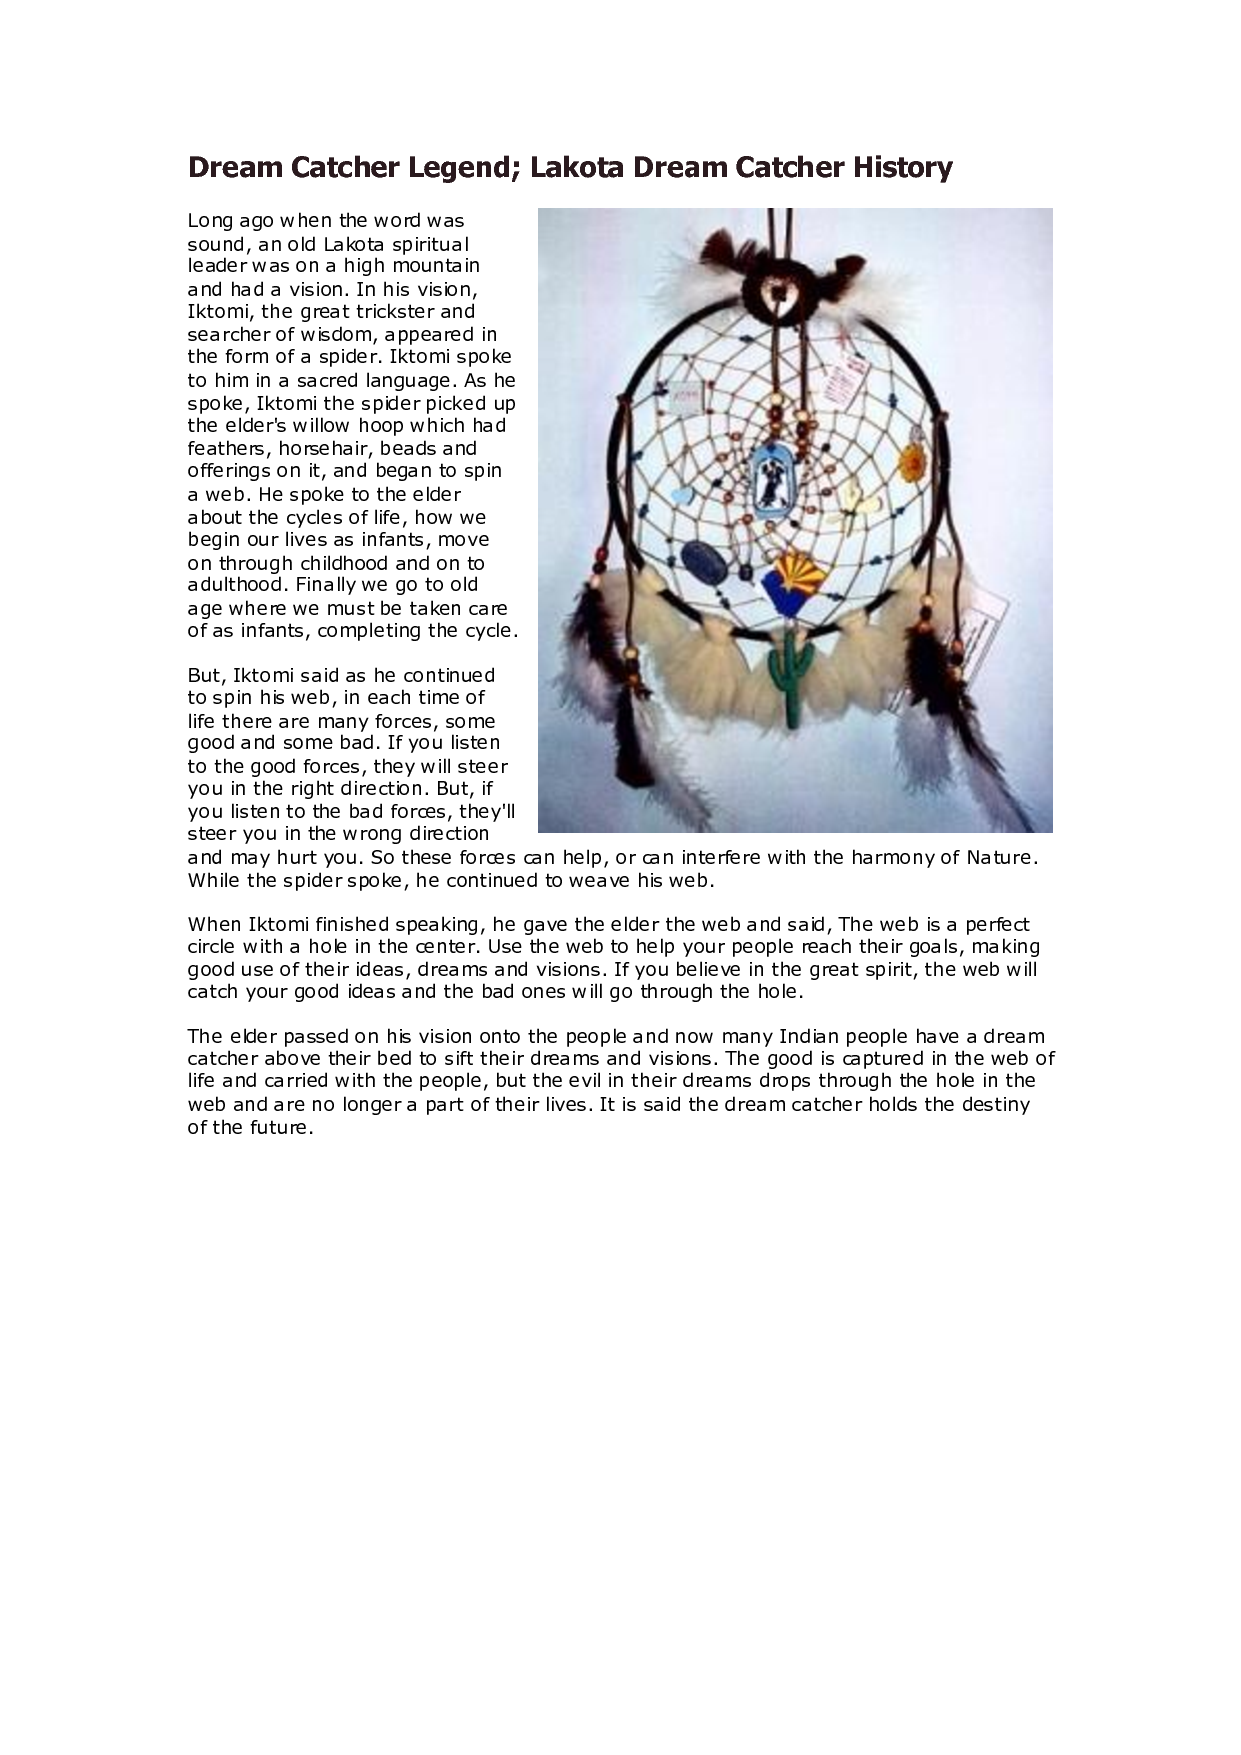 History Of Dream Catchers Brilliant Lakota Dream Catcher Legend  Dream Catcher Legend Lakota Dream